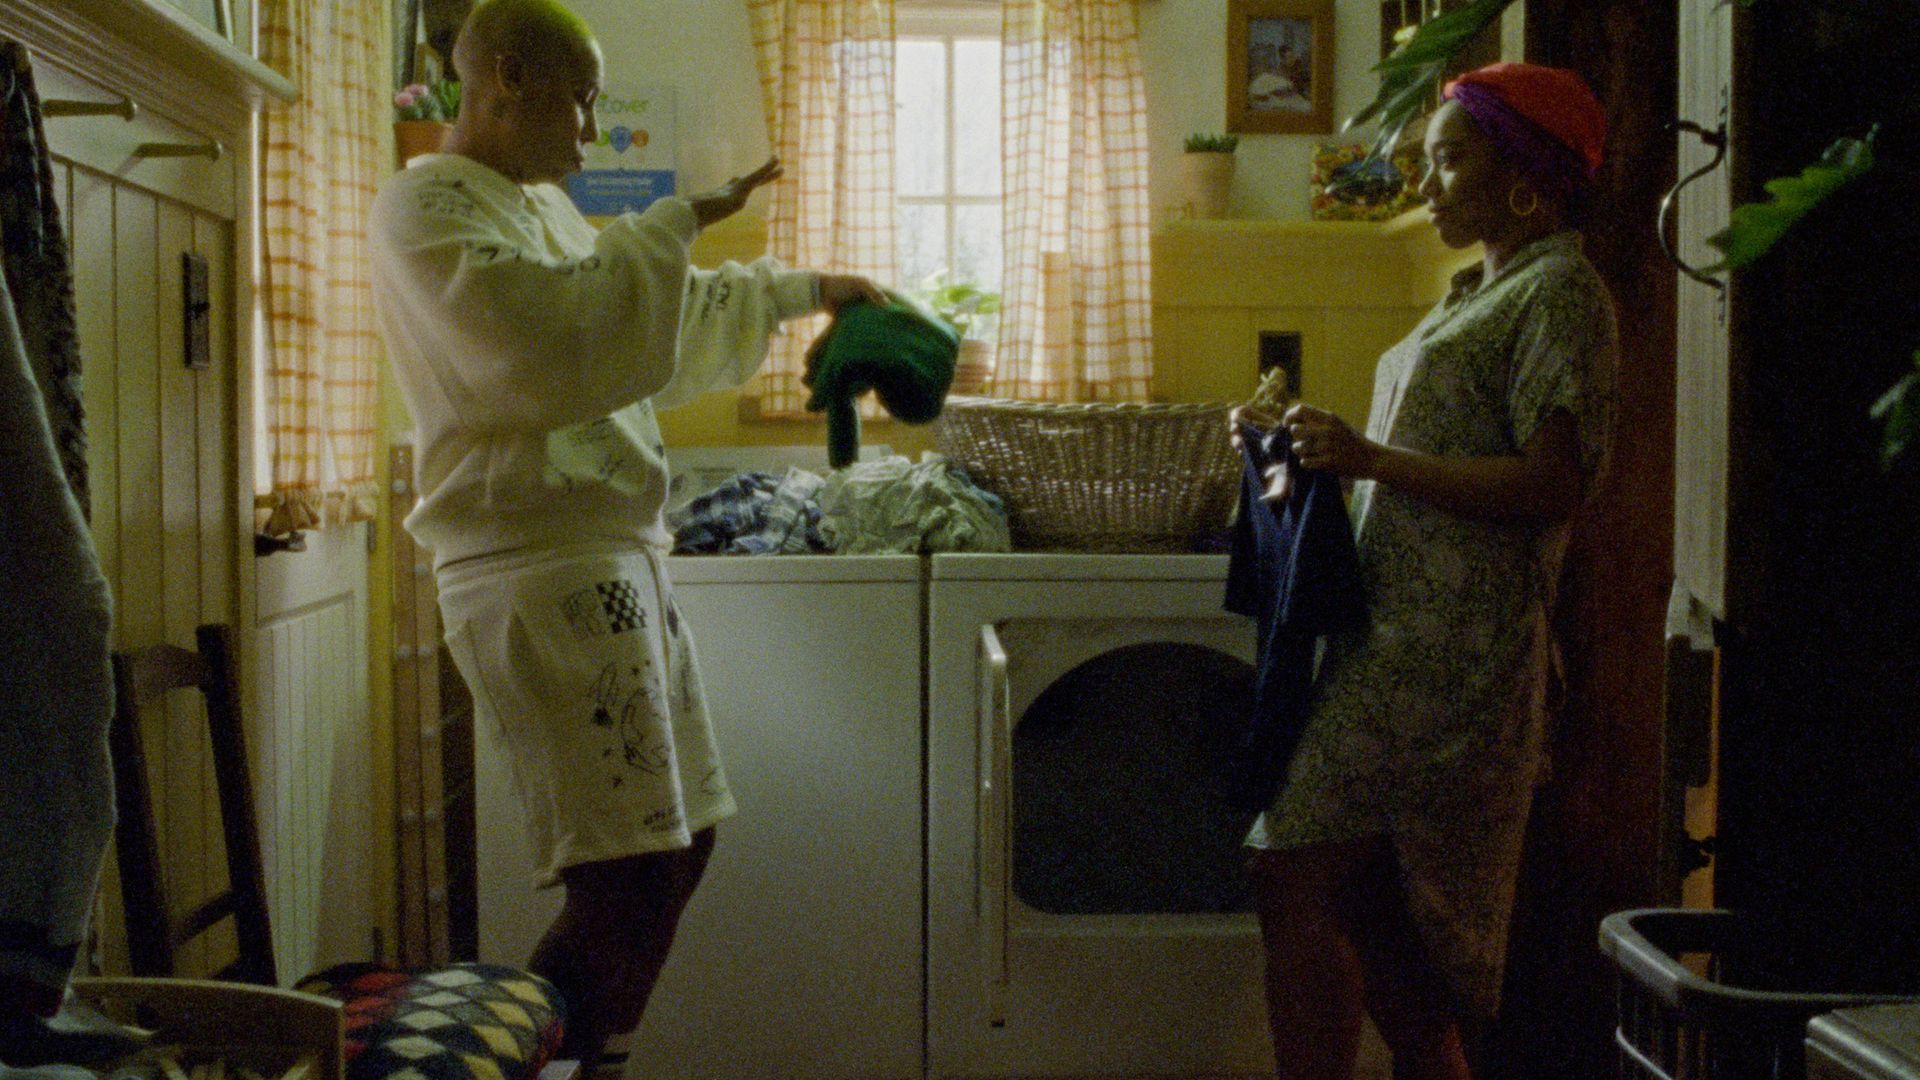 Lena Waithe, as Denise, and Naomi Ackie, as Alicia, in Master of None - Credit: COURTESY OF NETFLIX